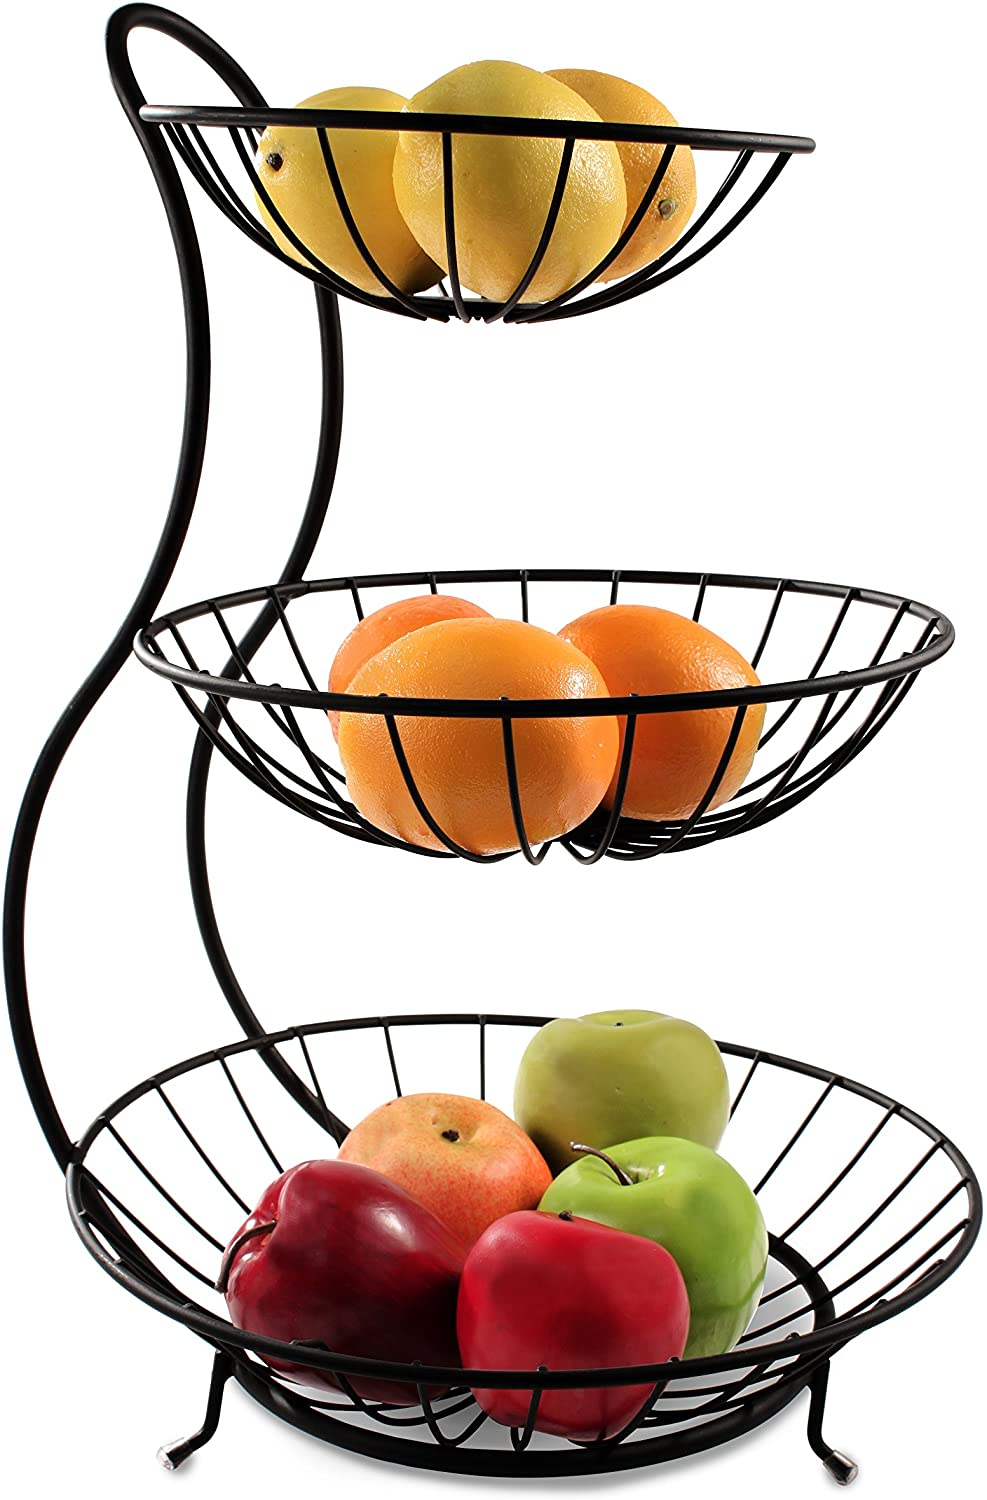 Spectrum Diversified Yumi Arched Server Stacked, 3-Tier Bowls, Dining Table & Kitchen Counter Organizer, Modern Fruit Basket Stand, Black